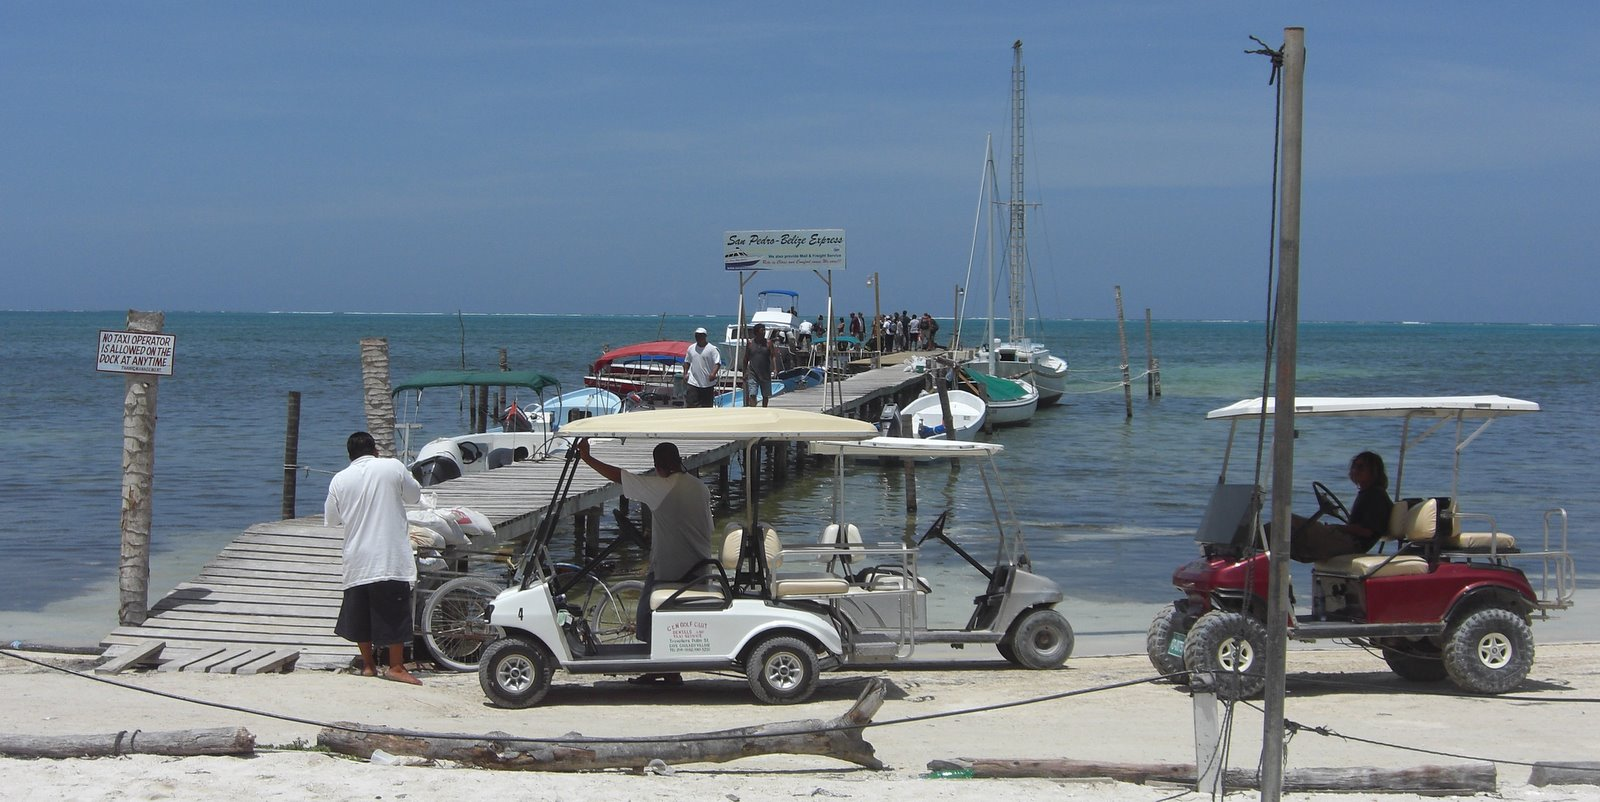 Golf cart taxis on the prowl for the newly arrived boat!